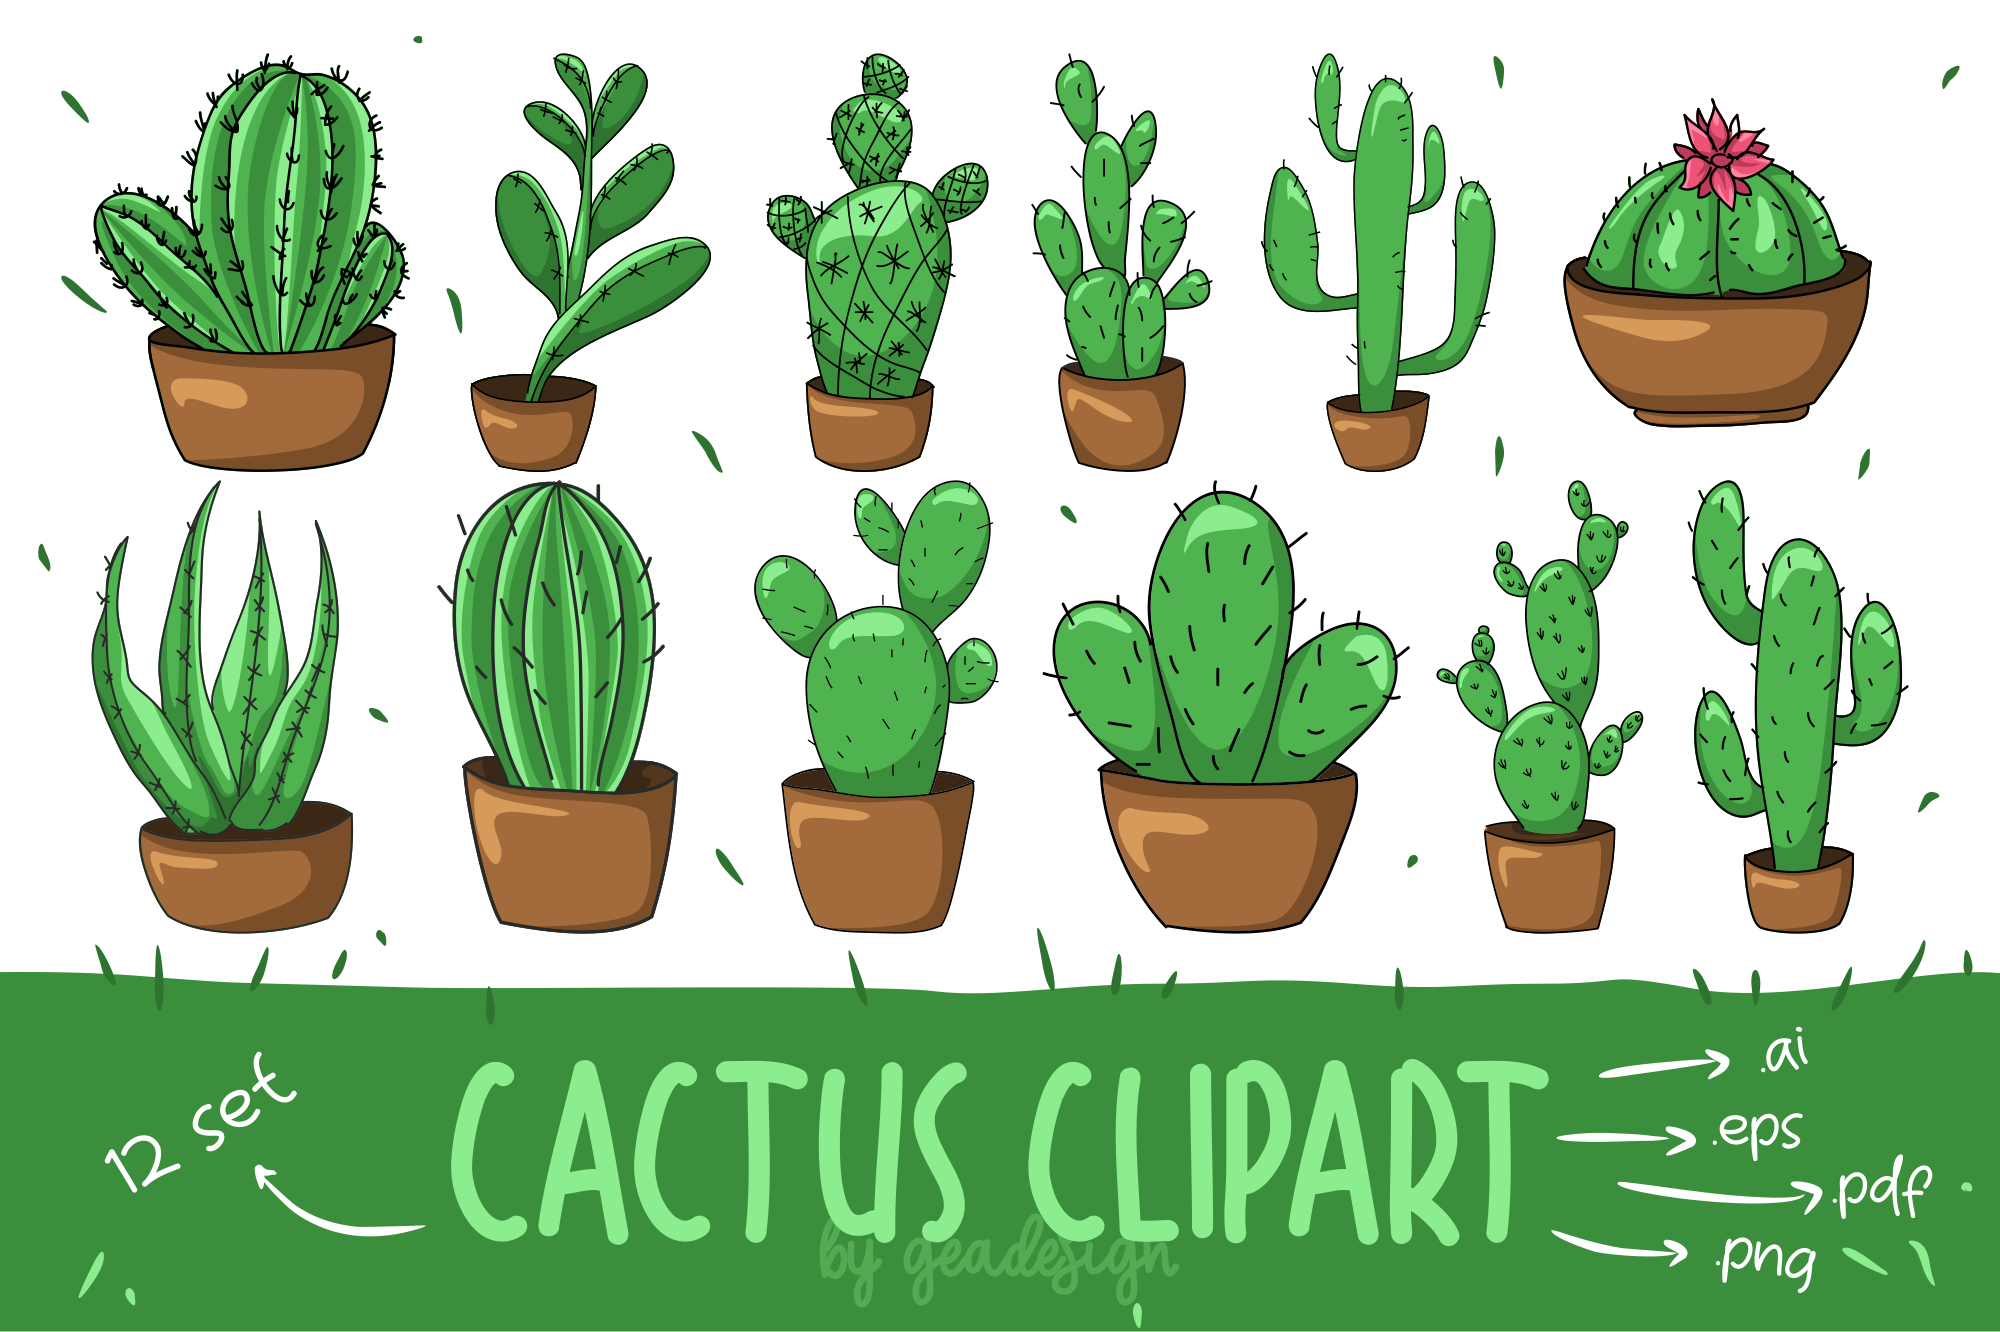 Download Free Cactus Clipart Set Graphic By Geadesign Creative Fabrica for Cricut Explore, Silhouette and other cutting machines.